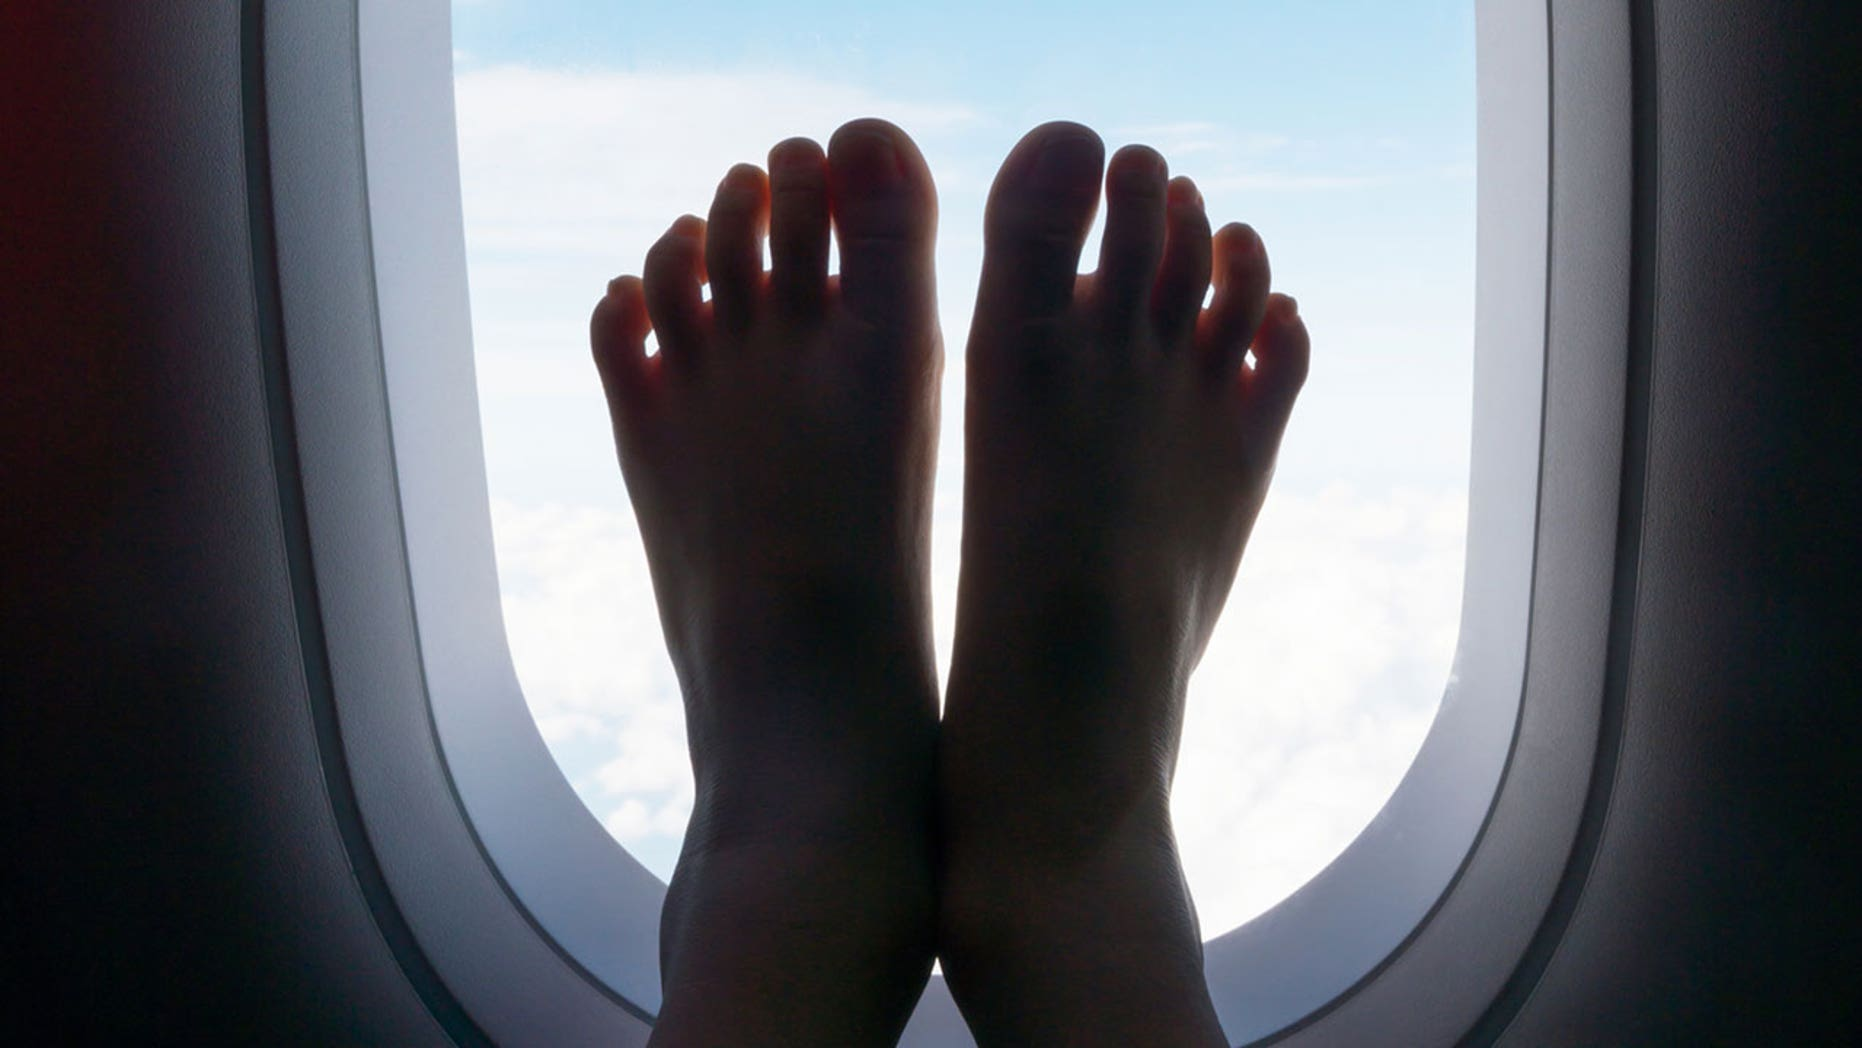 Flight attendants are taking to Reddit to divulge some of the nastiest sights they've seen in the high skies.